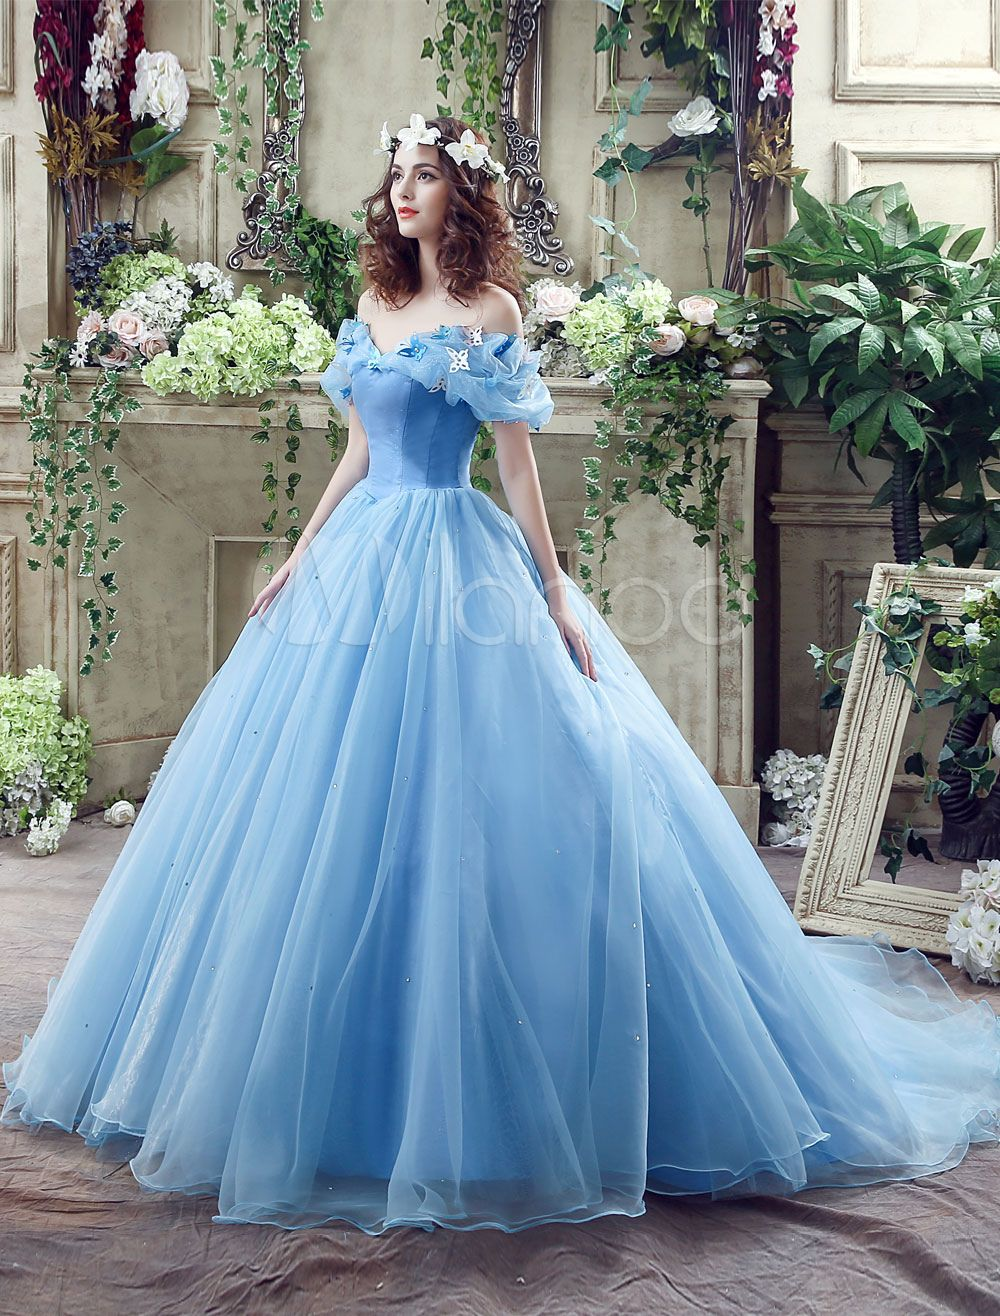 Cinderella dress blue organza tulle off the shoulder ball gown dress